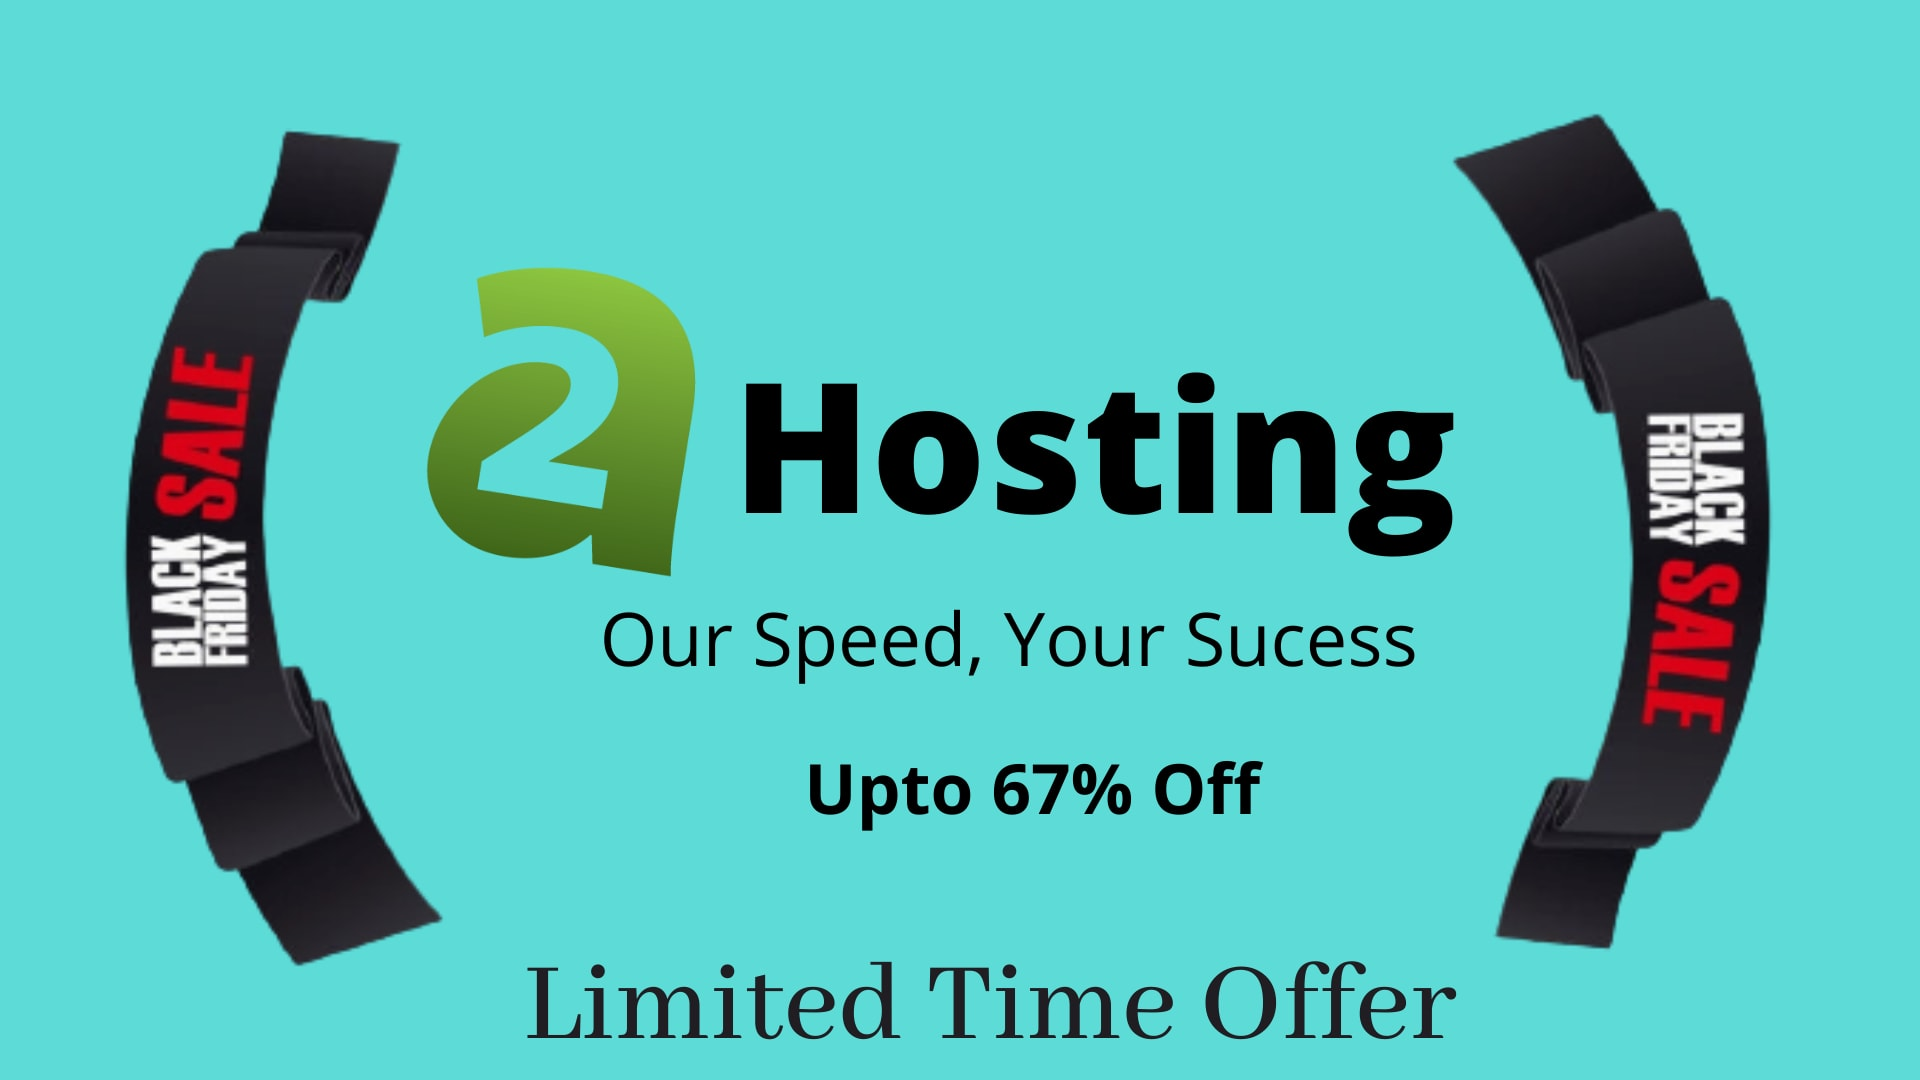 A2 hosting Black Friday - A2 Hosting Black Friday Sale 2020 Flat 67% Off [Live Now]